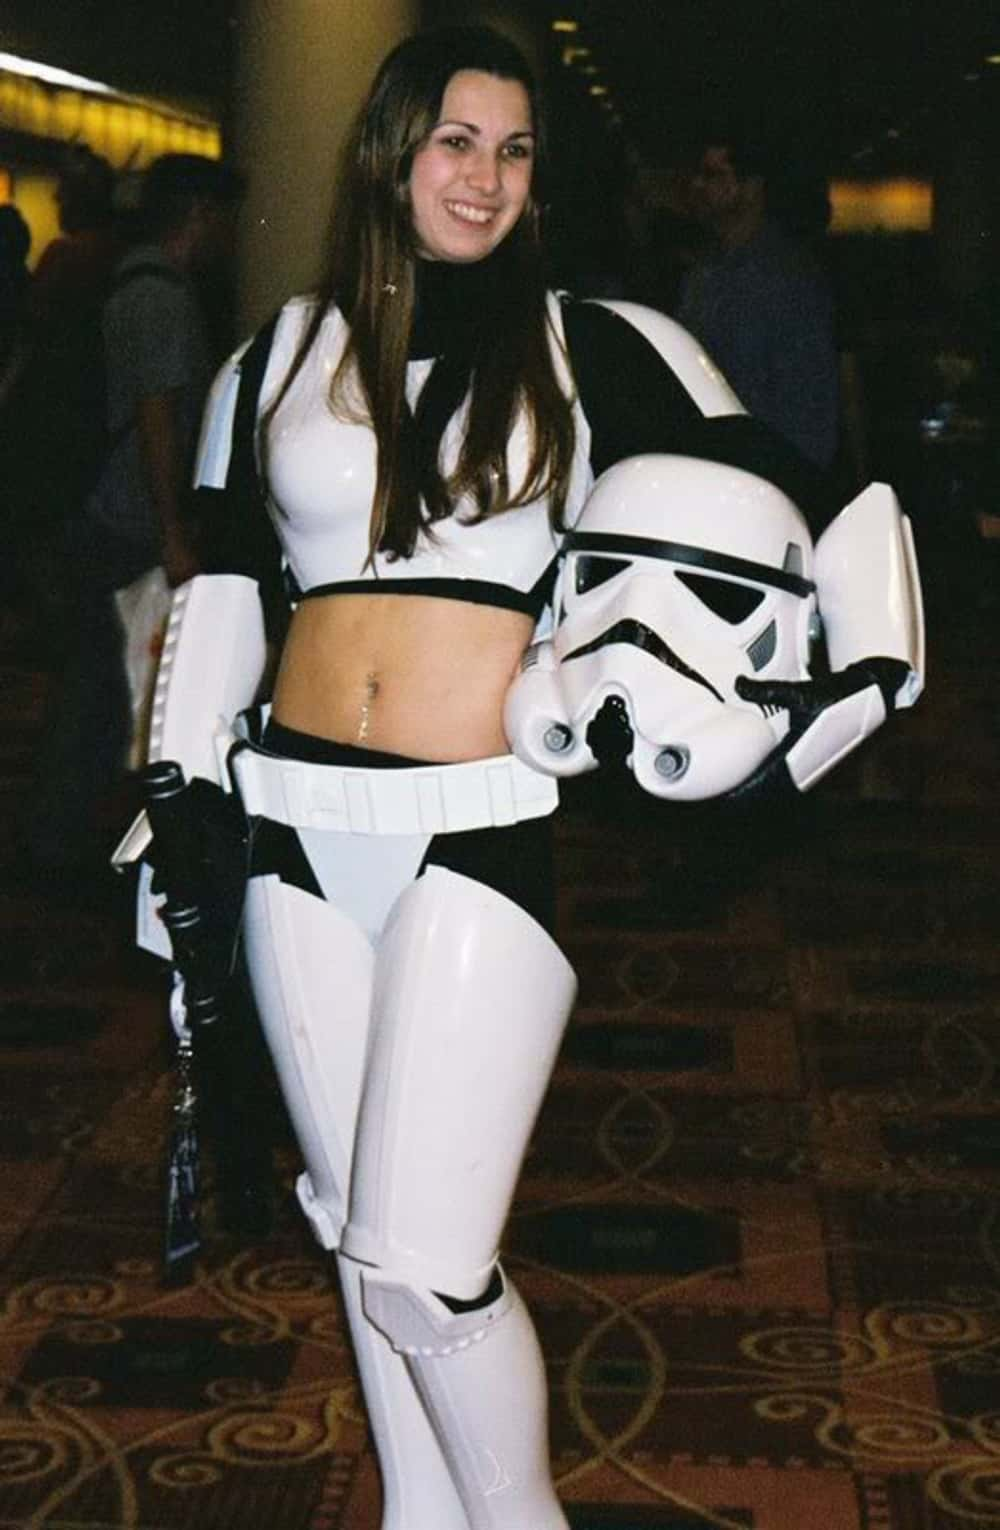 Her Midriff Might Be Vulnerabl... is listed (or ranked) 1 on the list Star Wars Fan Costumes Gone Seriously Wrong